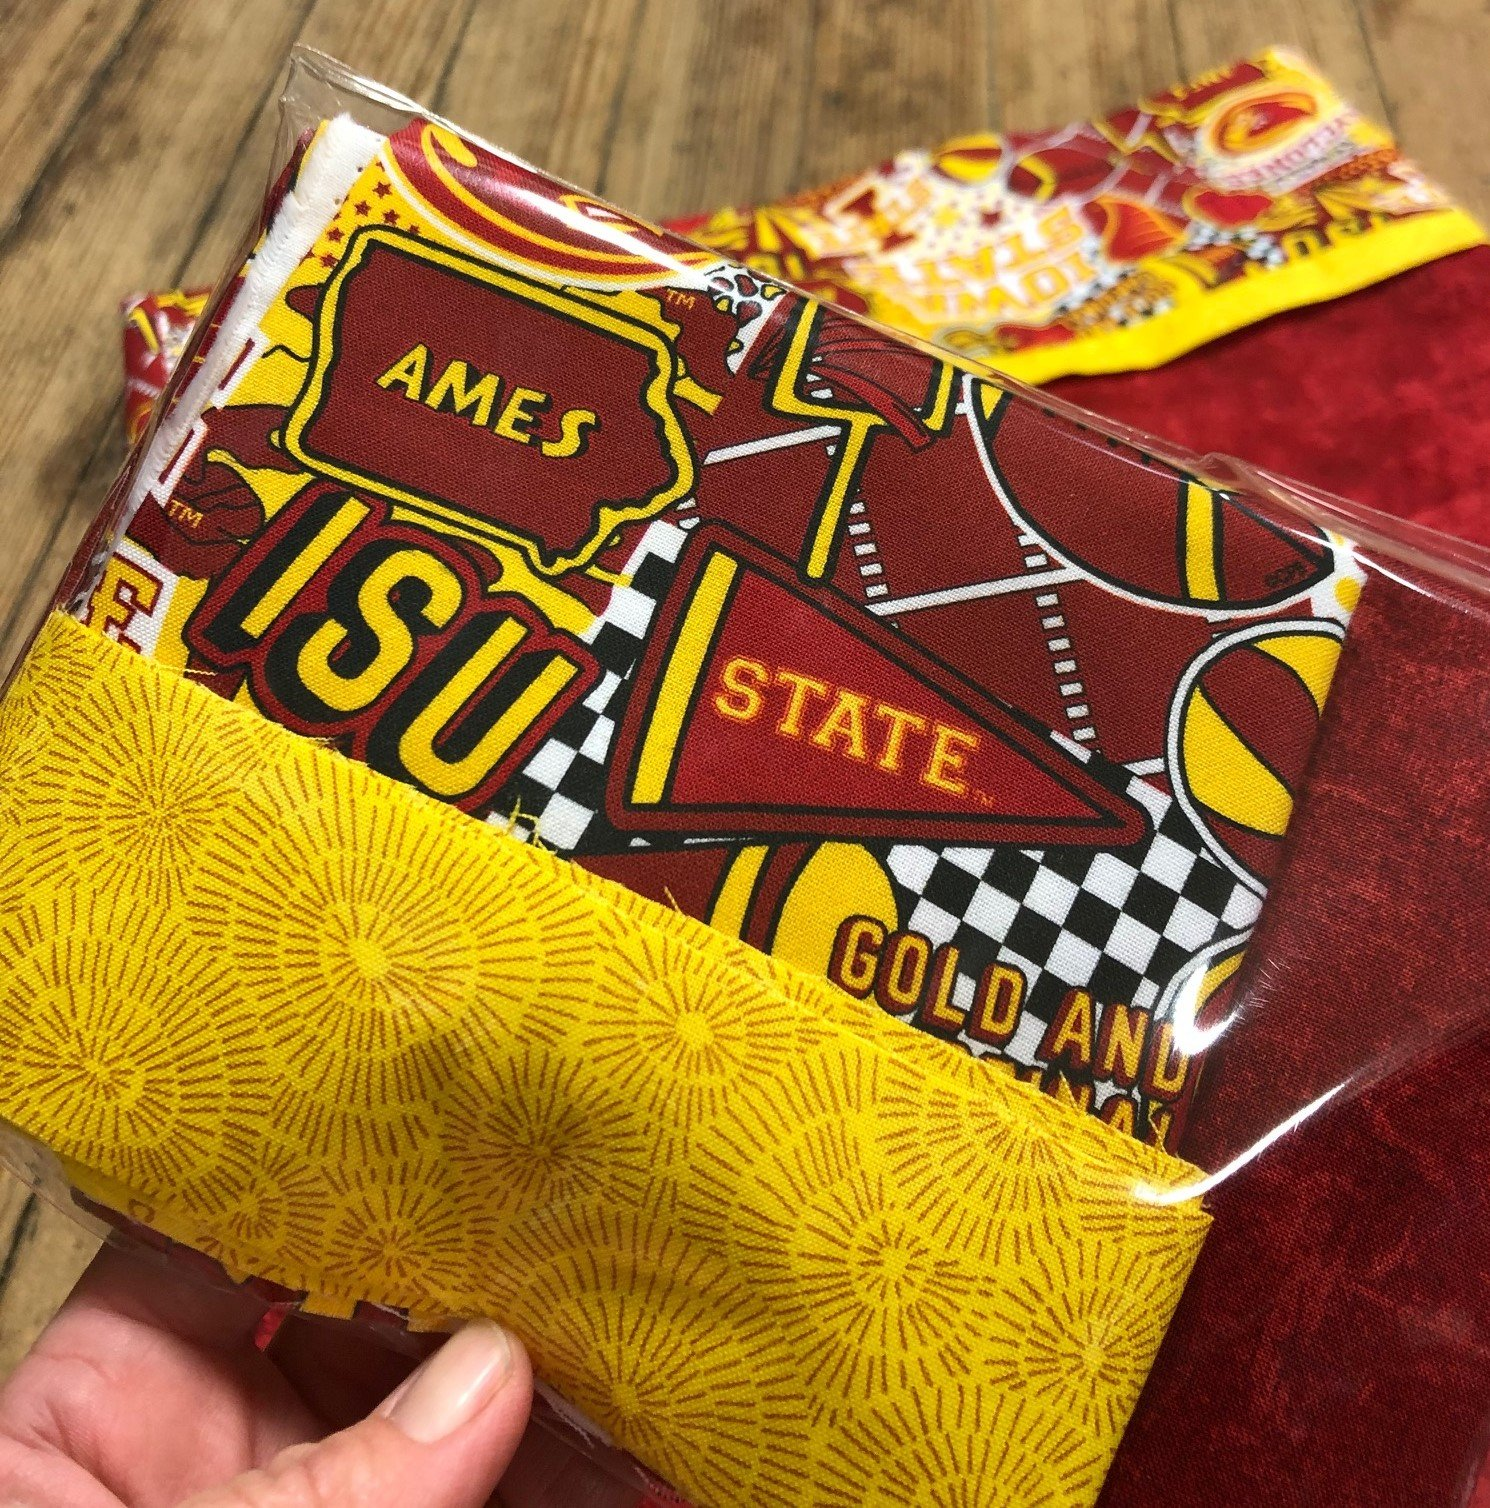 Iowa State Cyclone Pillow Case Kit